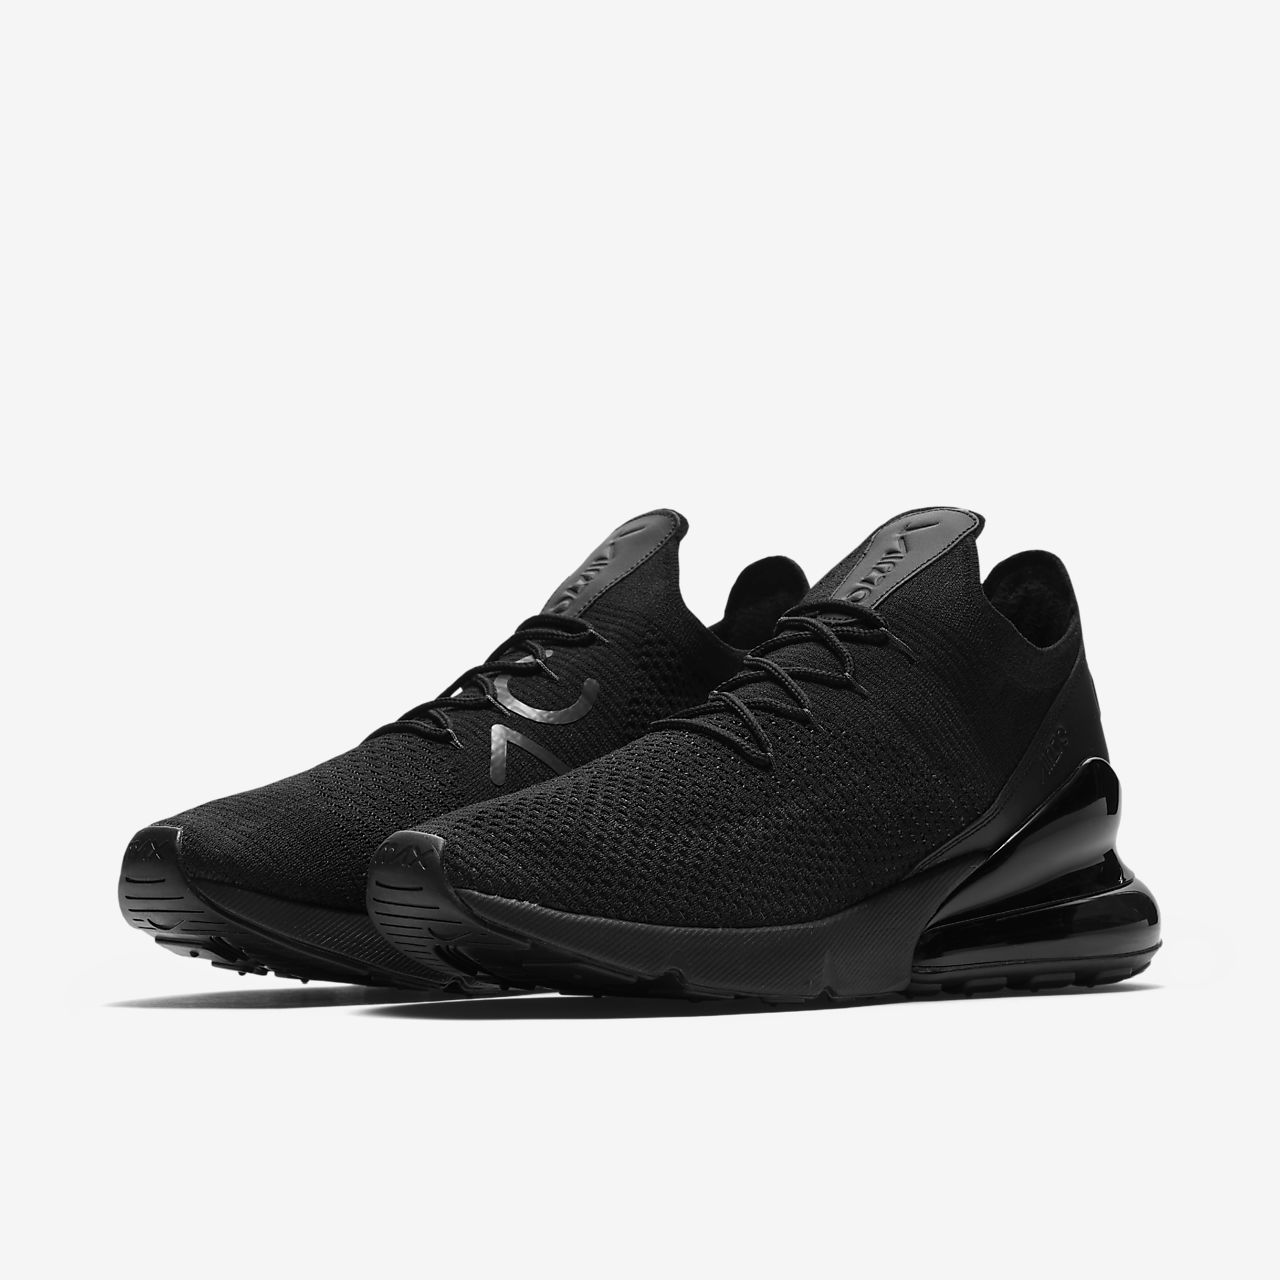 finest selection d8f48 59fc8 Nike Air Max 270 Flyknit Men's Shoe